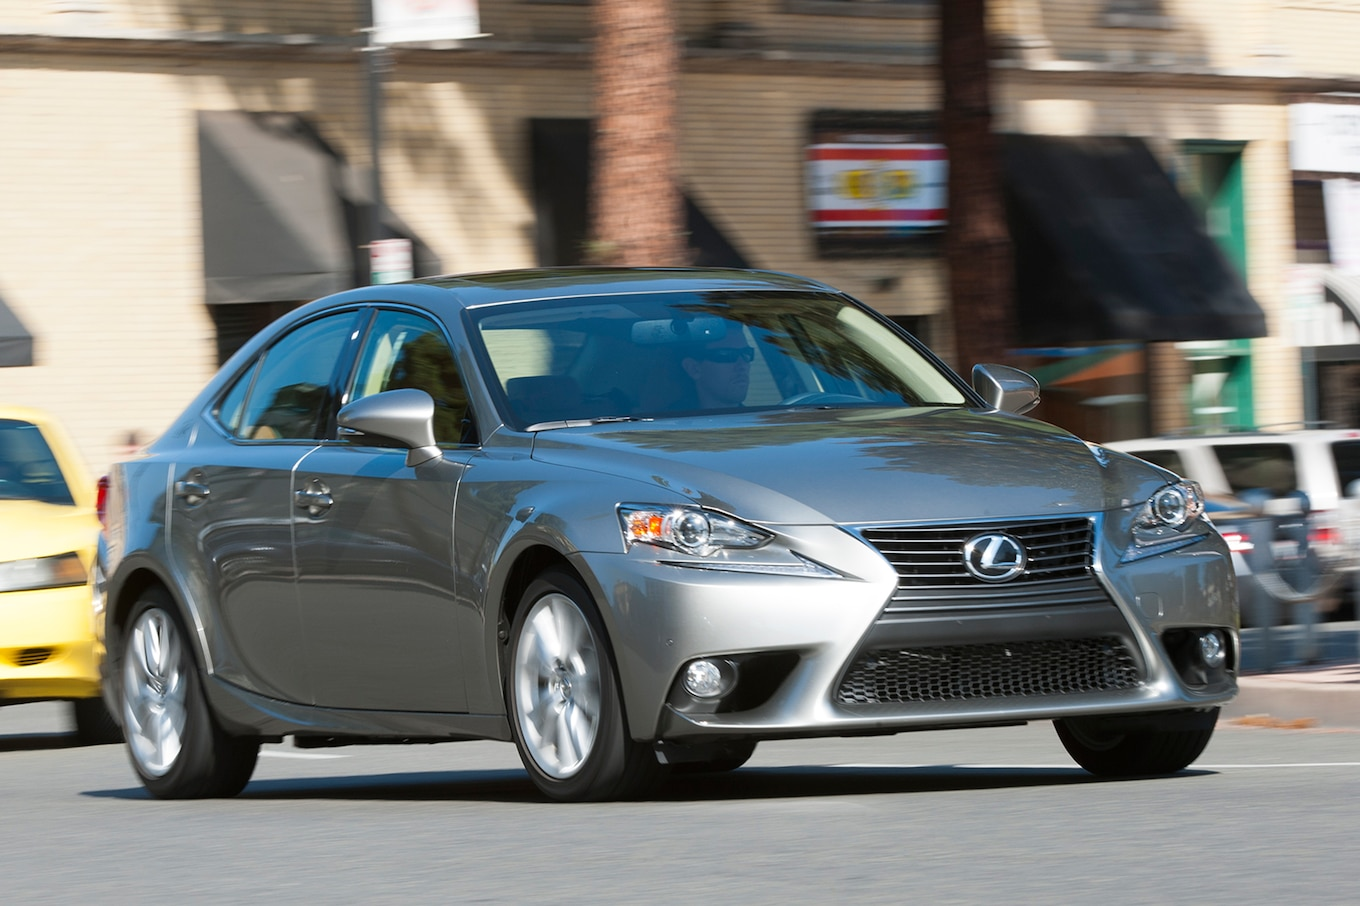 2014 Lexus IS250 Reviews and Rating